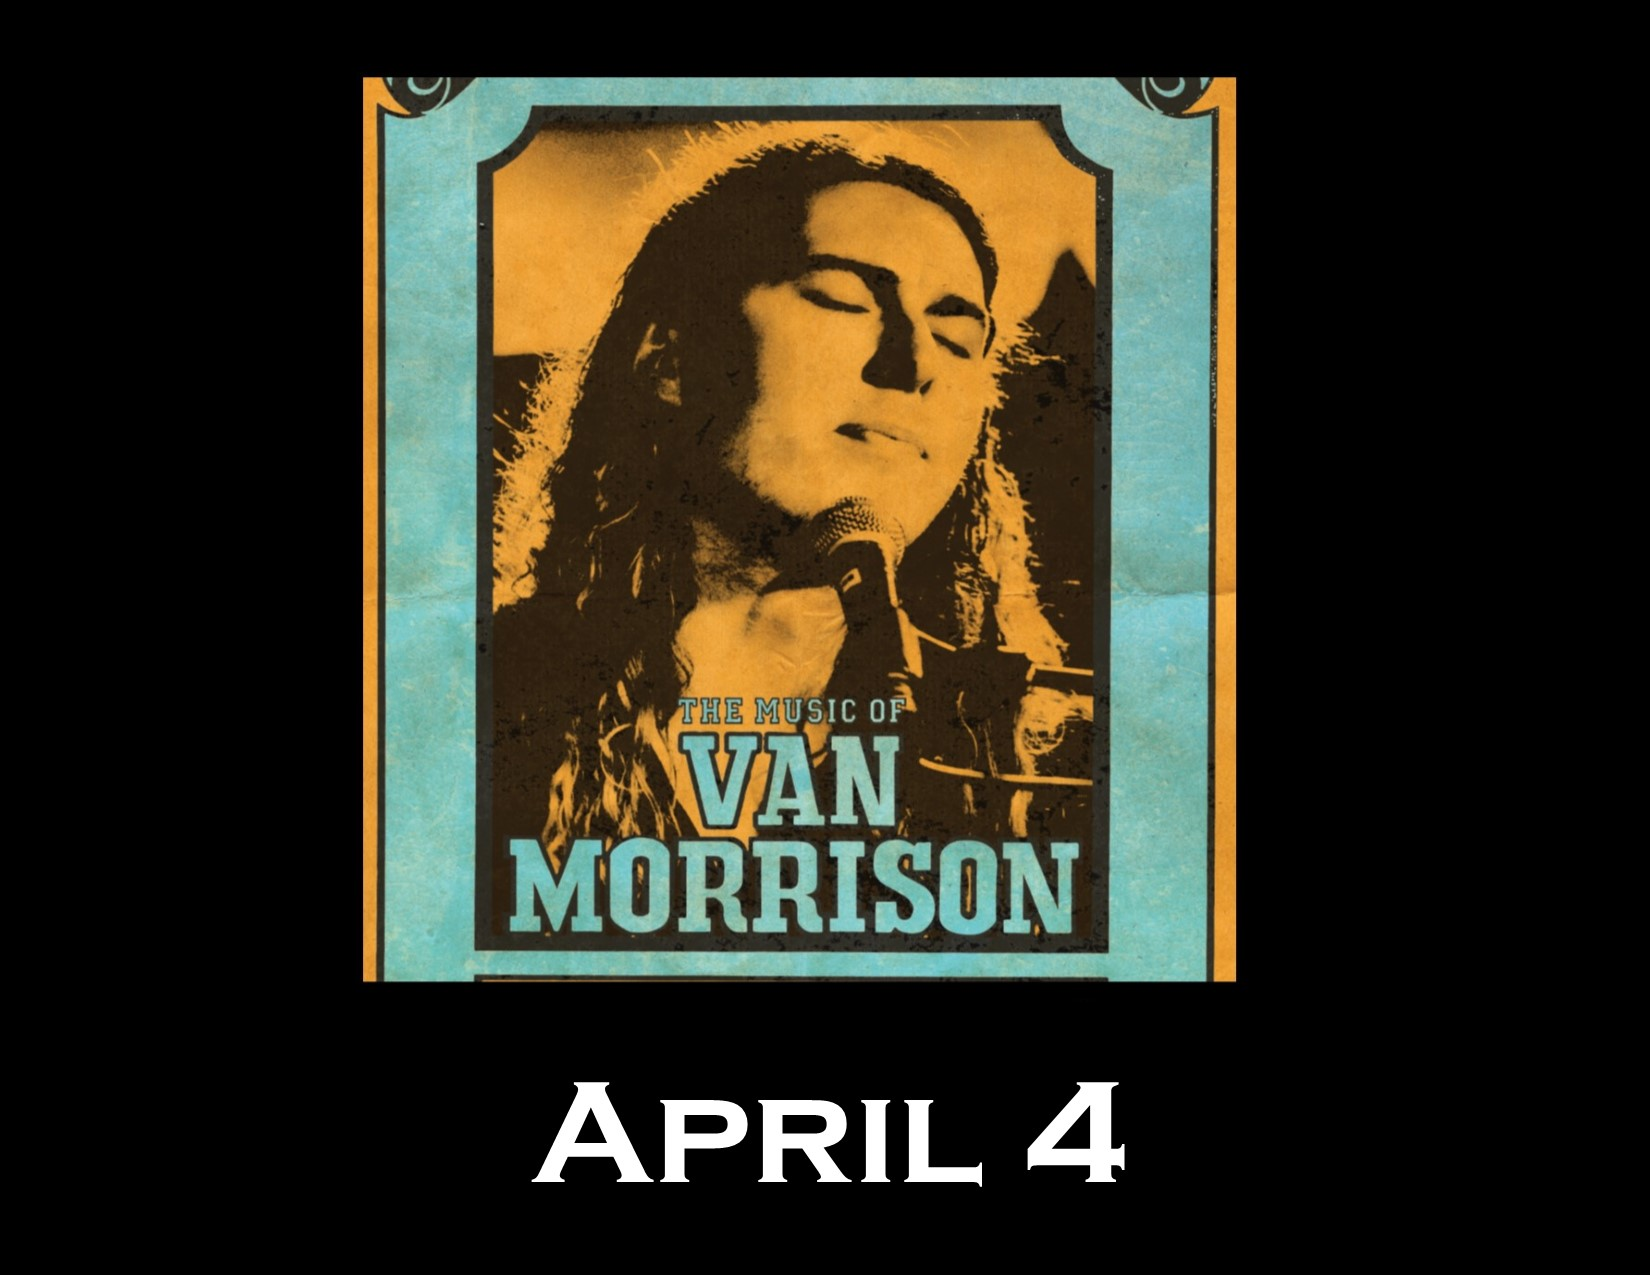 The Music of Van Morrison - Presented by Matt Weidinger